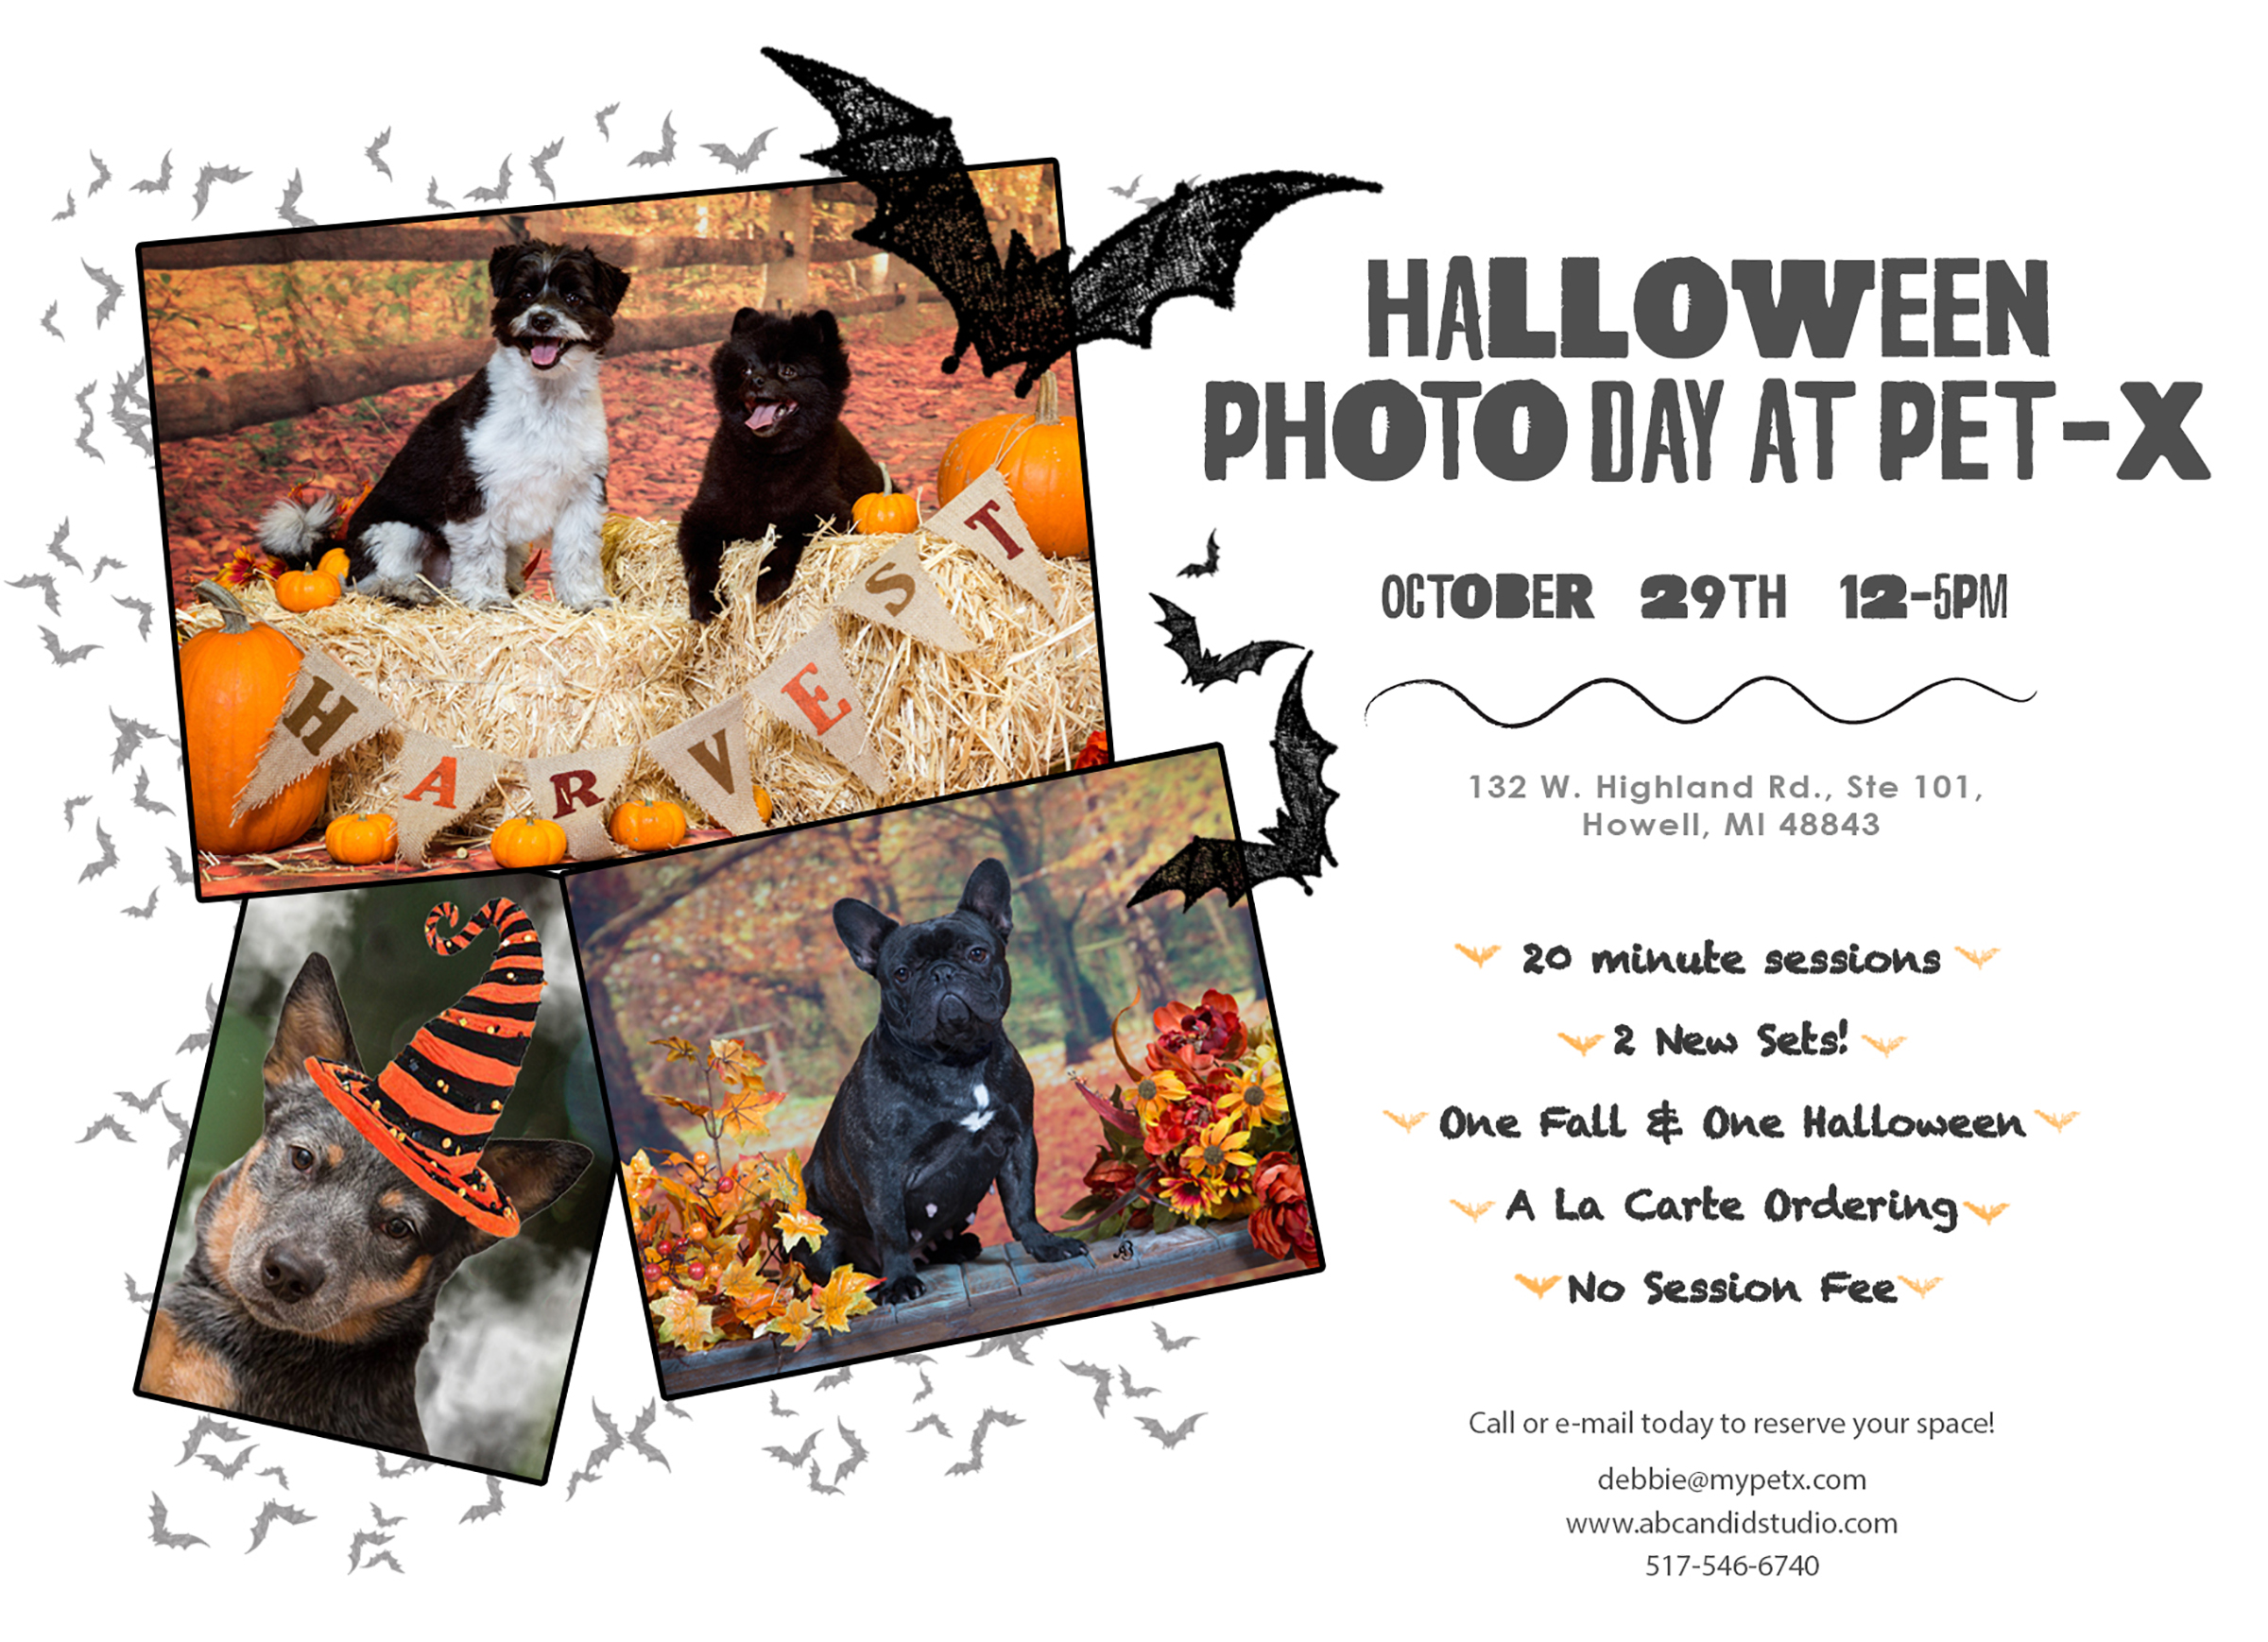 Pet Xtras Halloween Photo Event | Howell Michigan | Fall Photos | Alyssia Booth's Candid & Studio